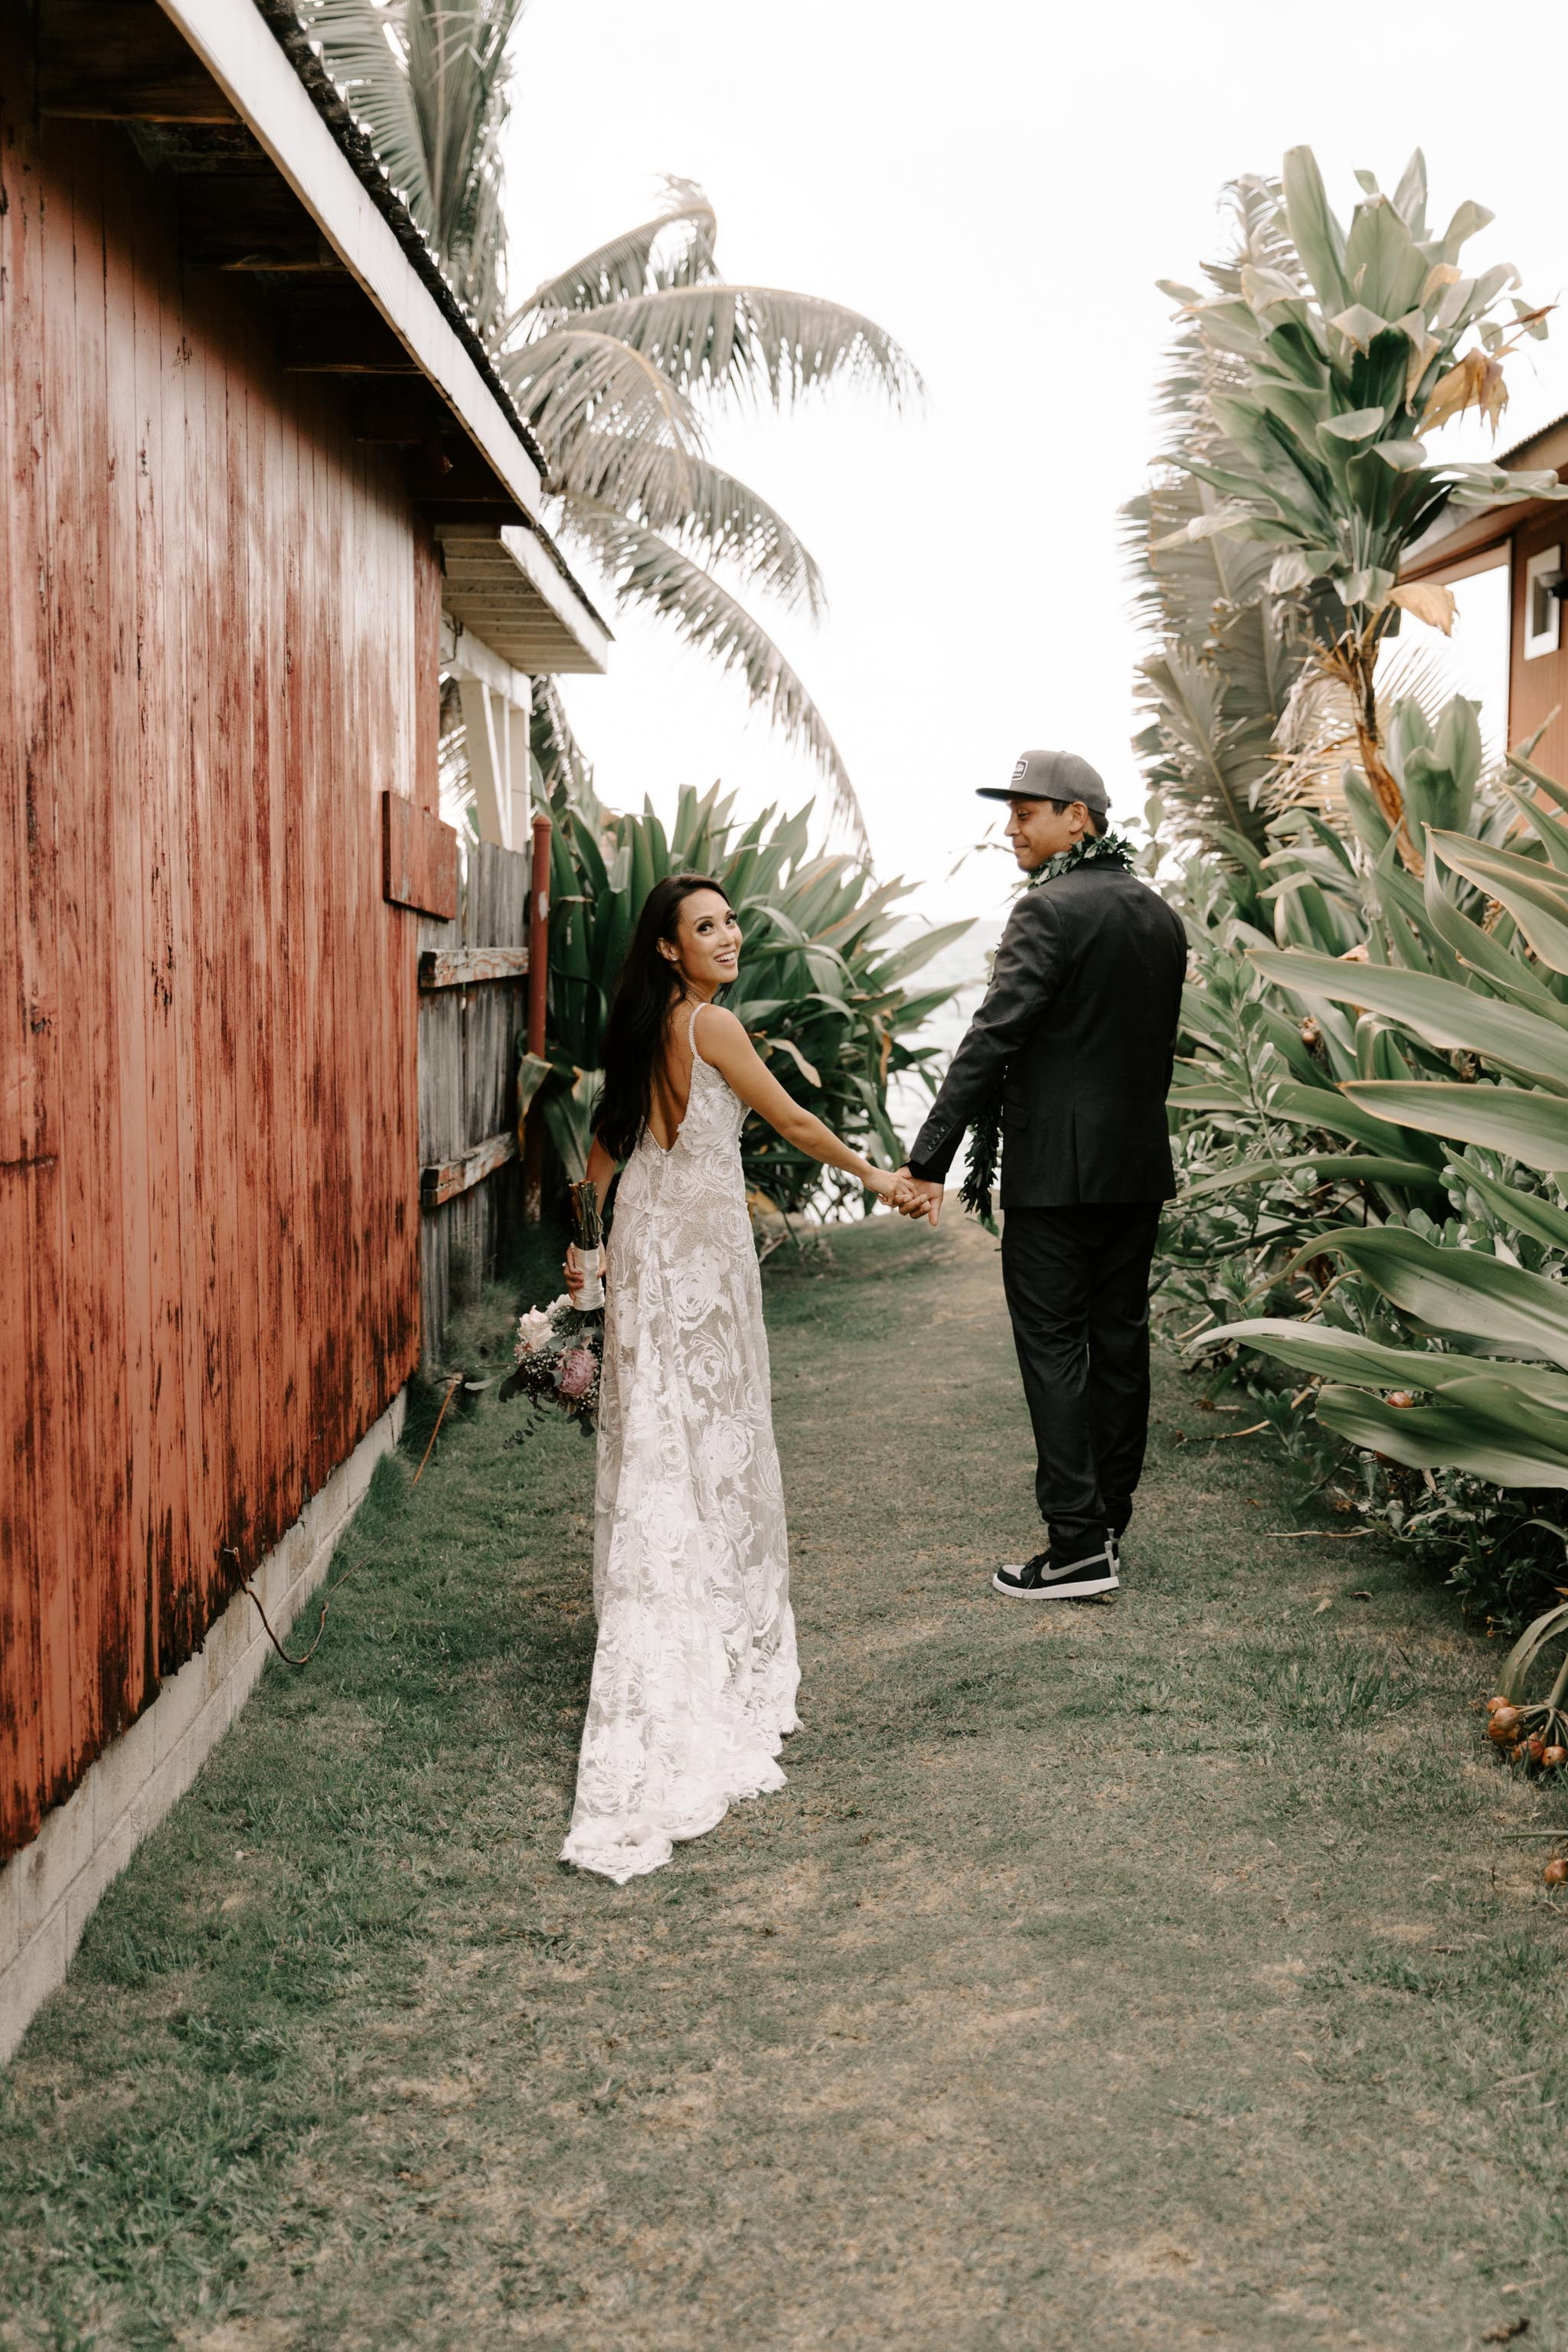 Grace Loves Lace Rosa Wedding Gown - Hale Koa Phineas Estate Wedding By Hawaii Wedding Photographer Desiree Leilani